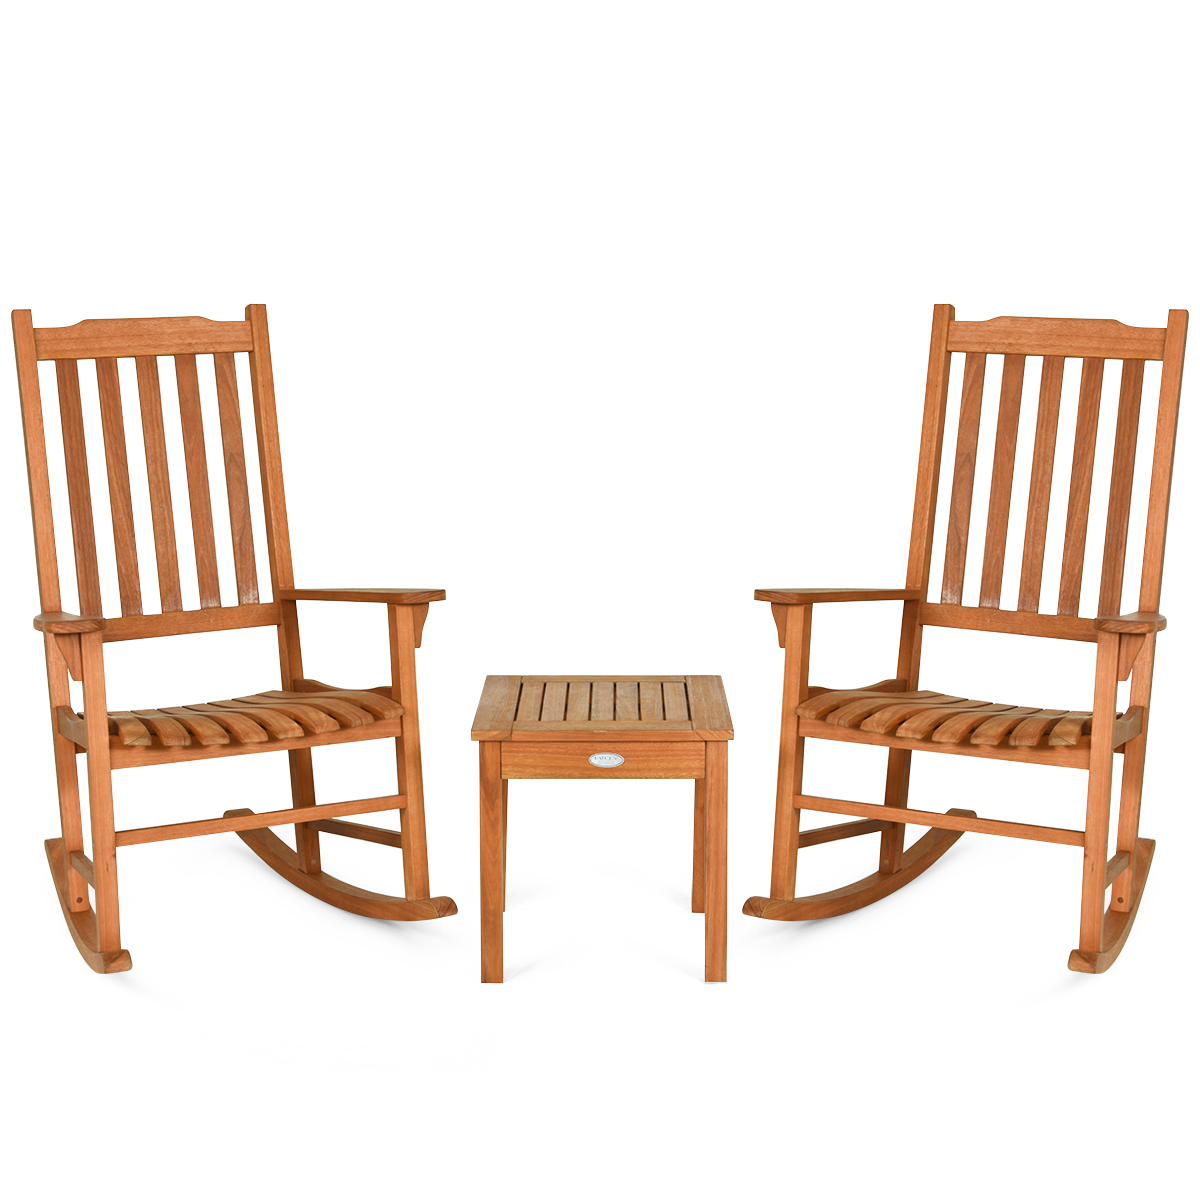 outdoor 3 pieces wooden rocking chair set patio rocker chair and table